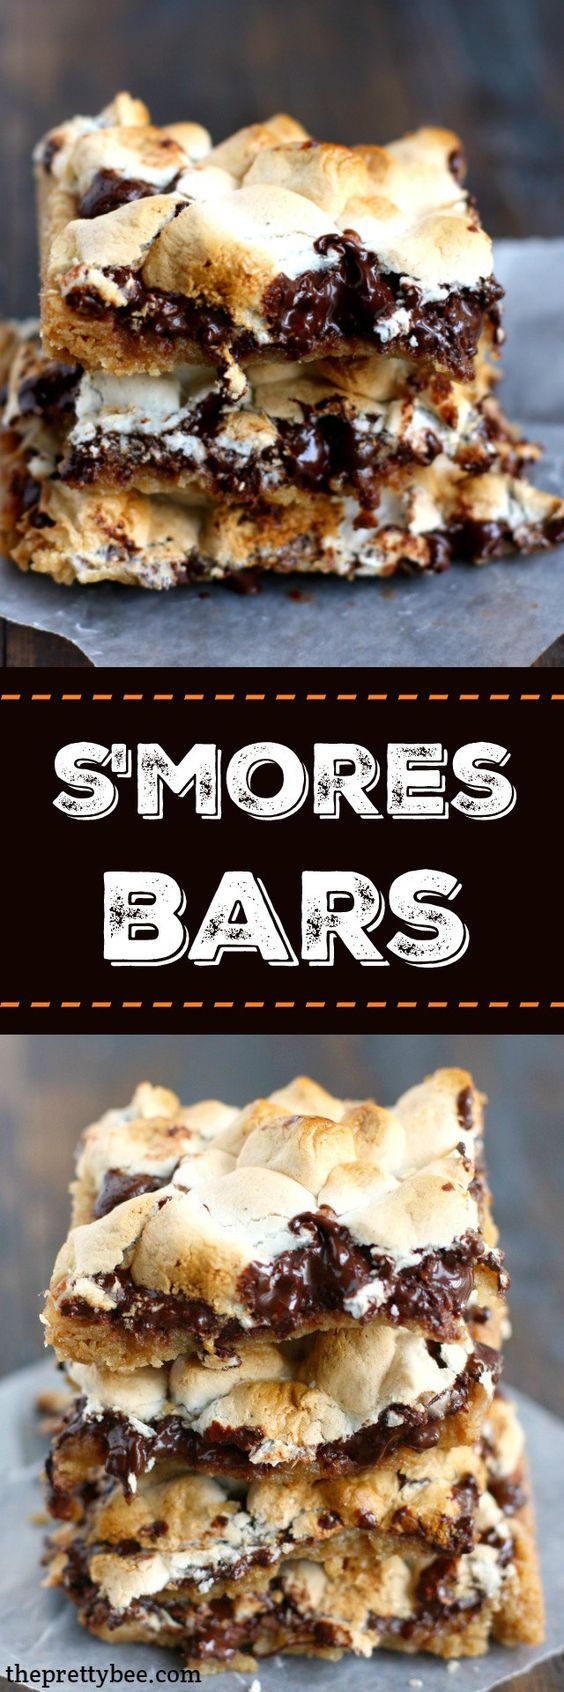 ... toasted marshmallows, a graham cracker crust...these s'mores bars have